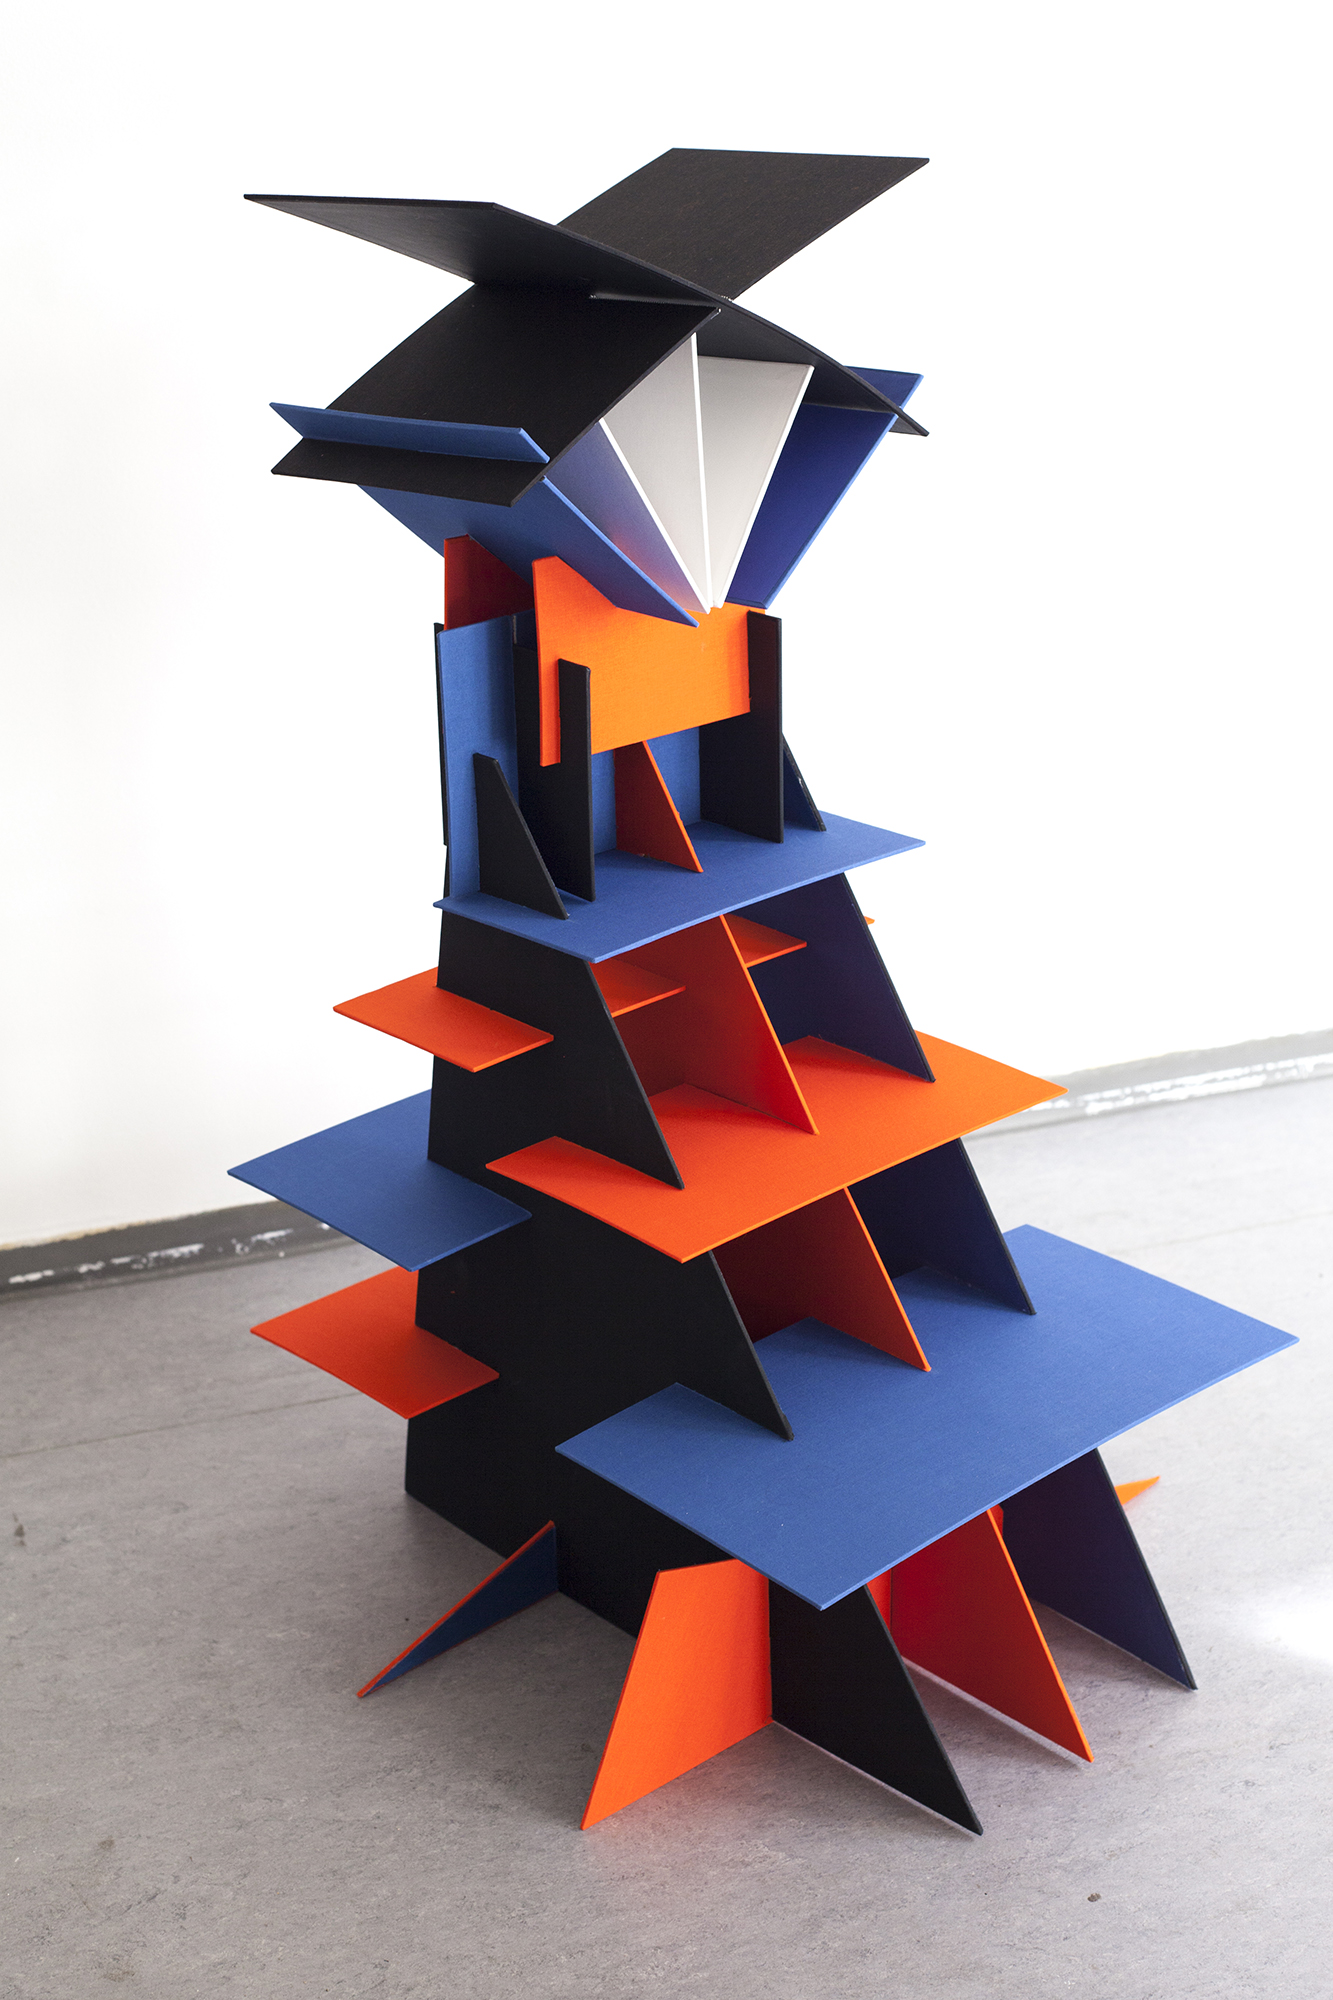 Sculptural book art object made of book cover material in bright colors